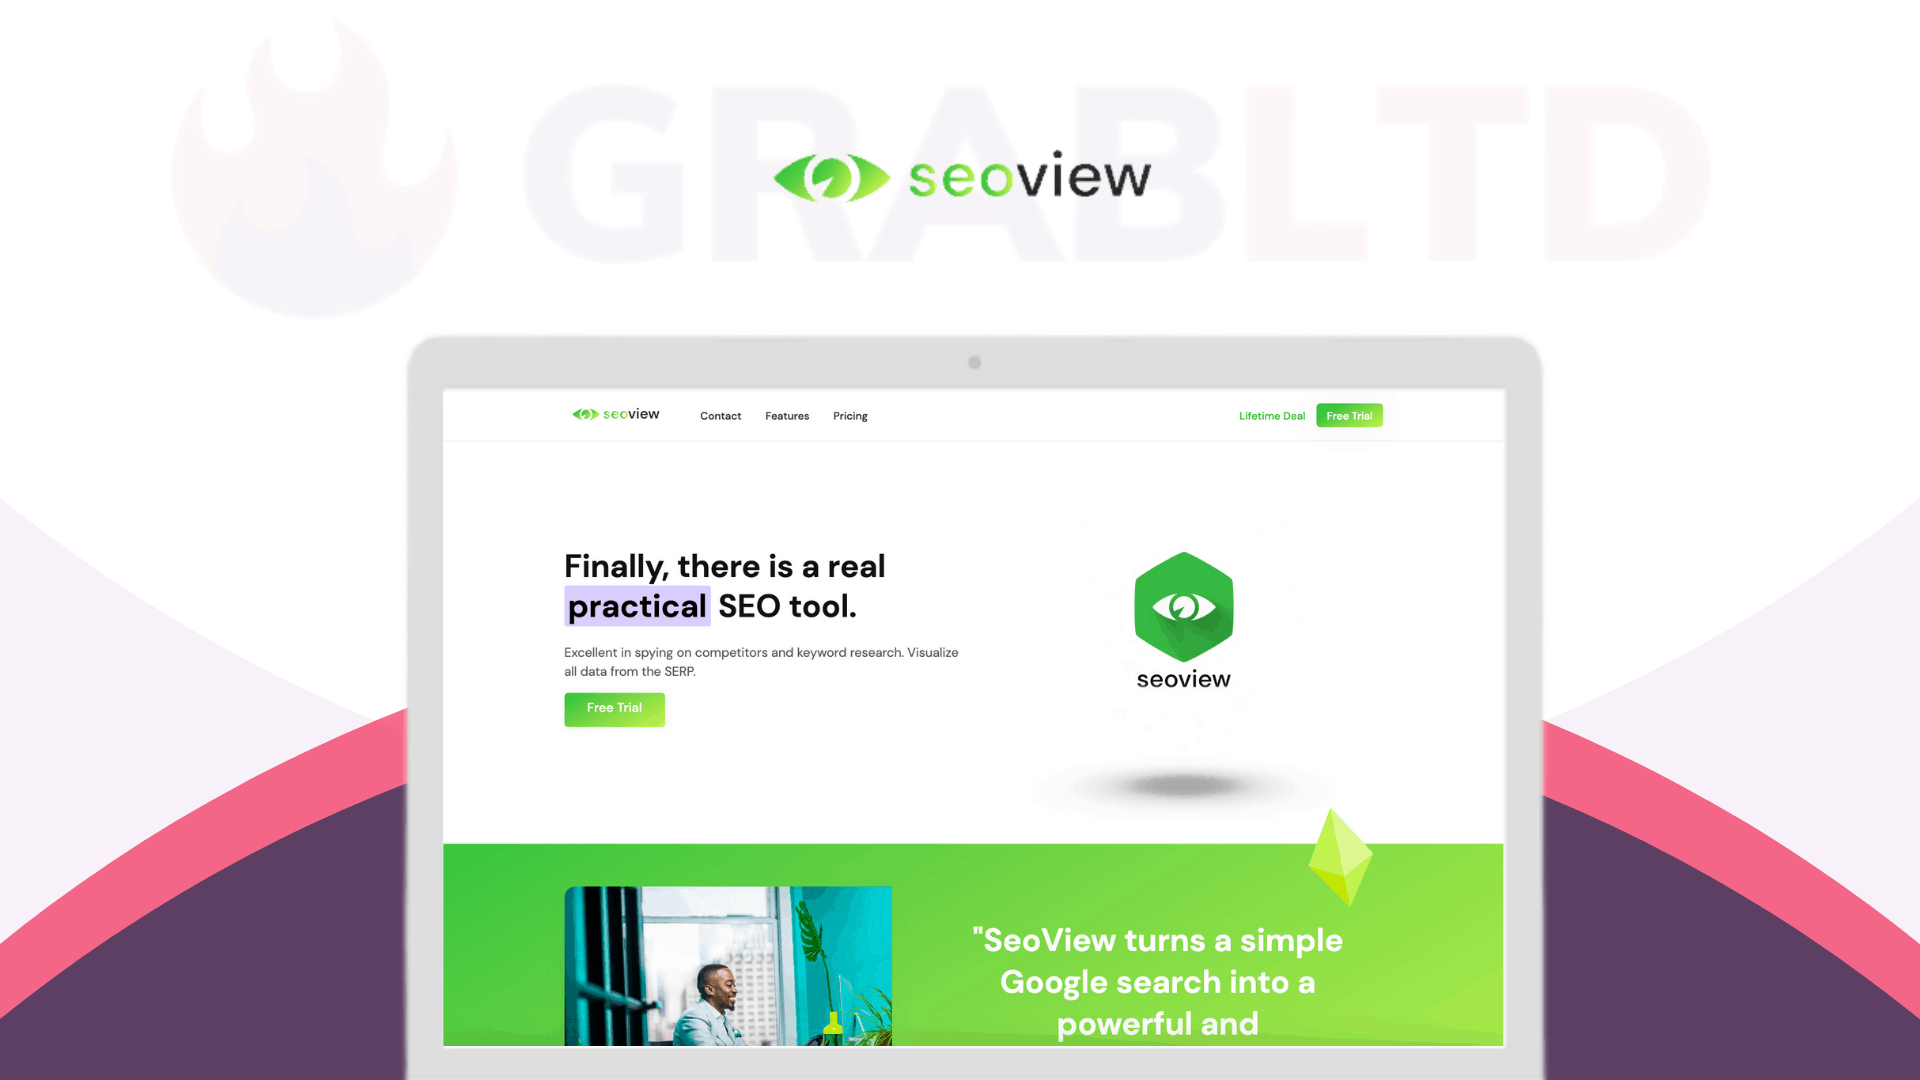 SeoView | Visualize All Data From The SERP 1